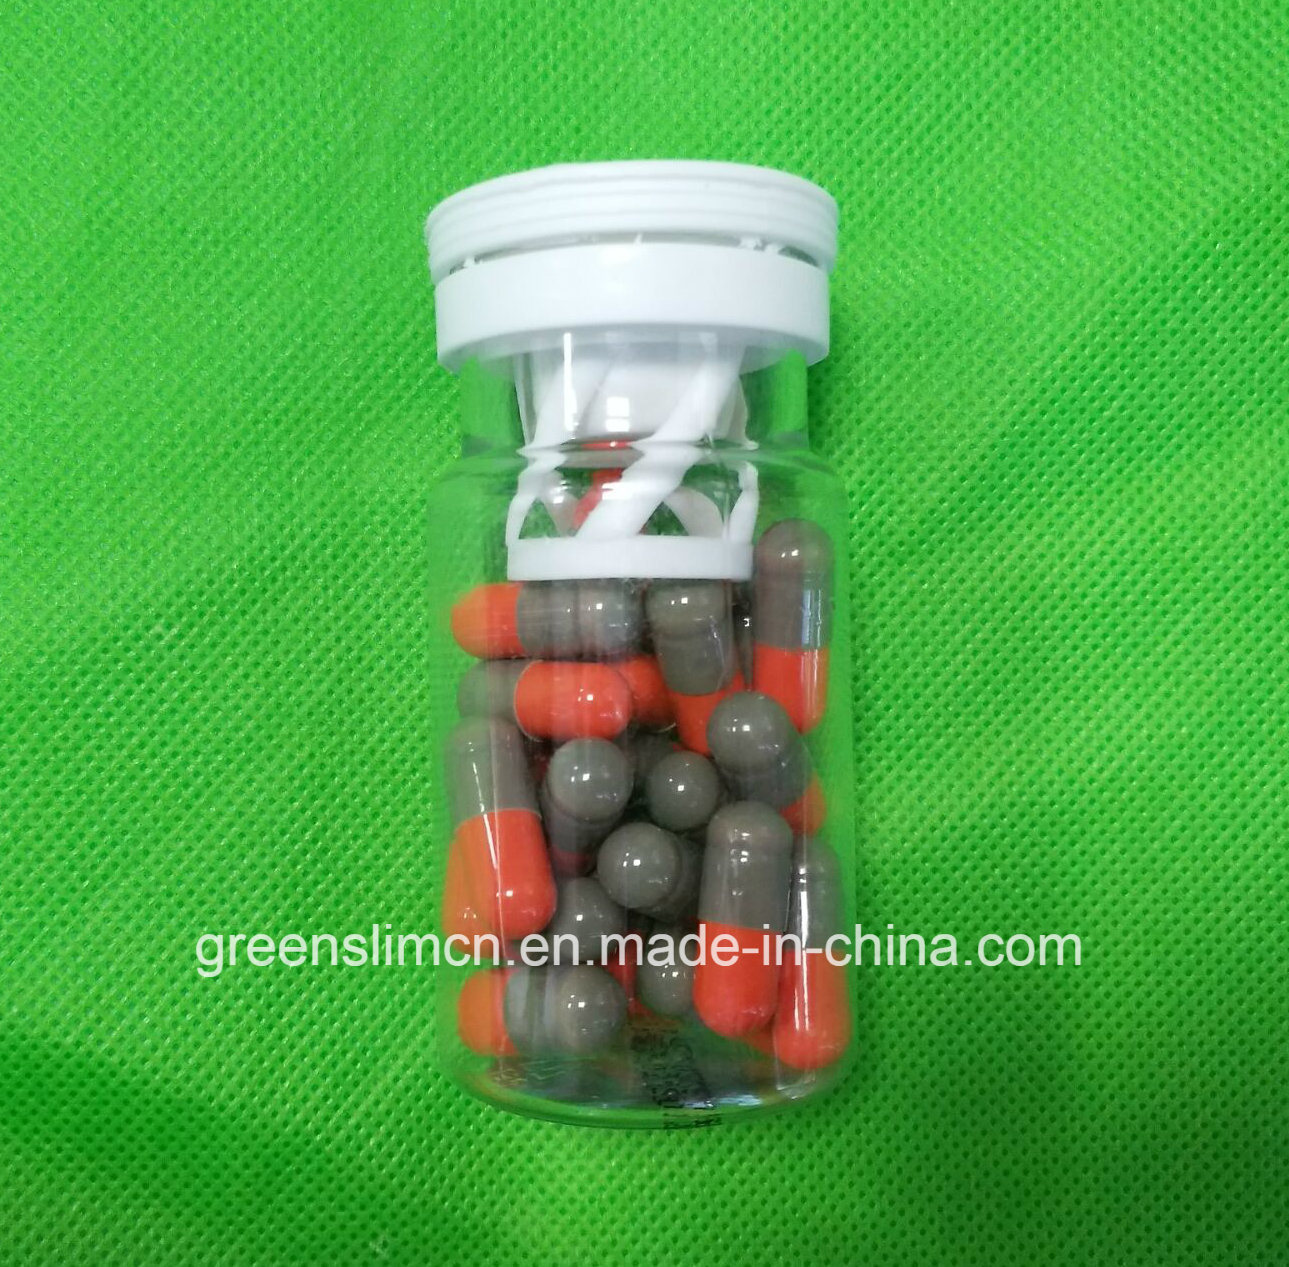 OEM Private Label Citrus Fit Slimming Pill Weight Loss Capsules